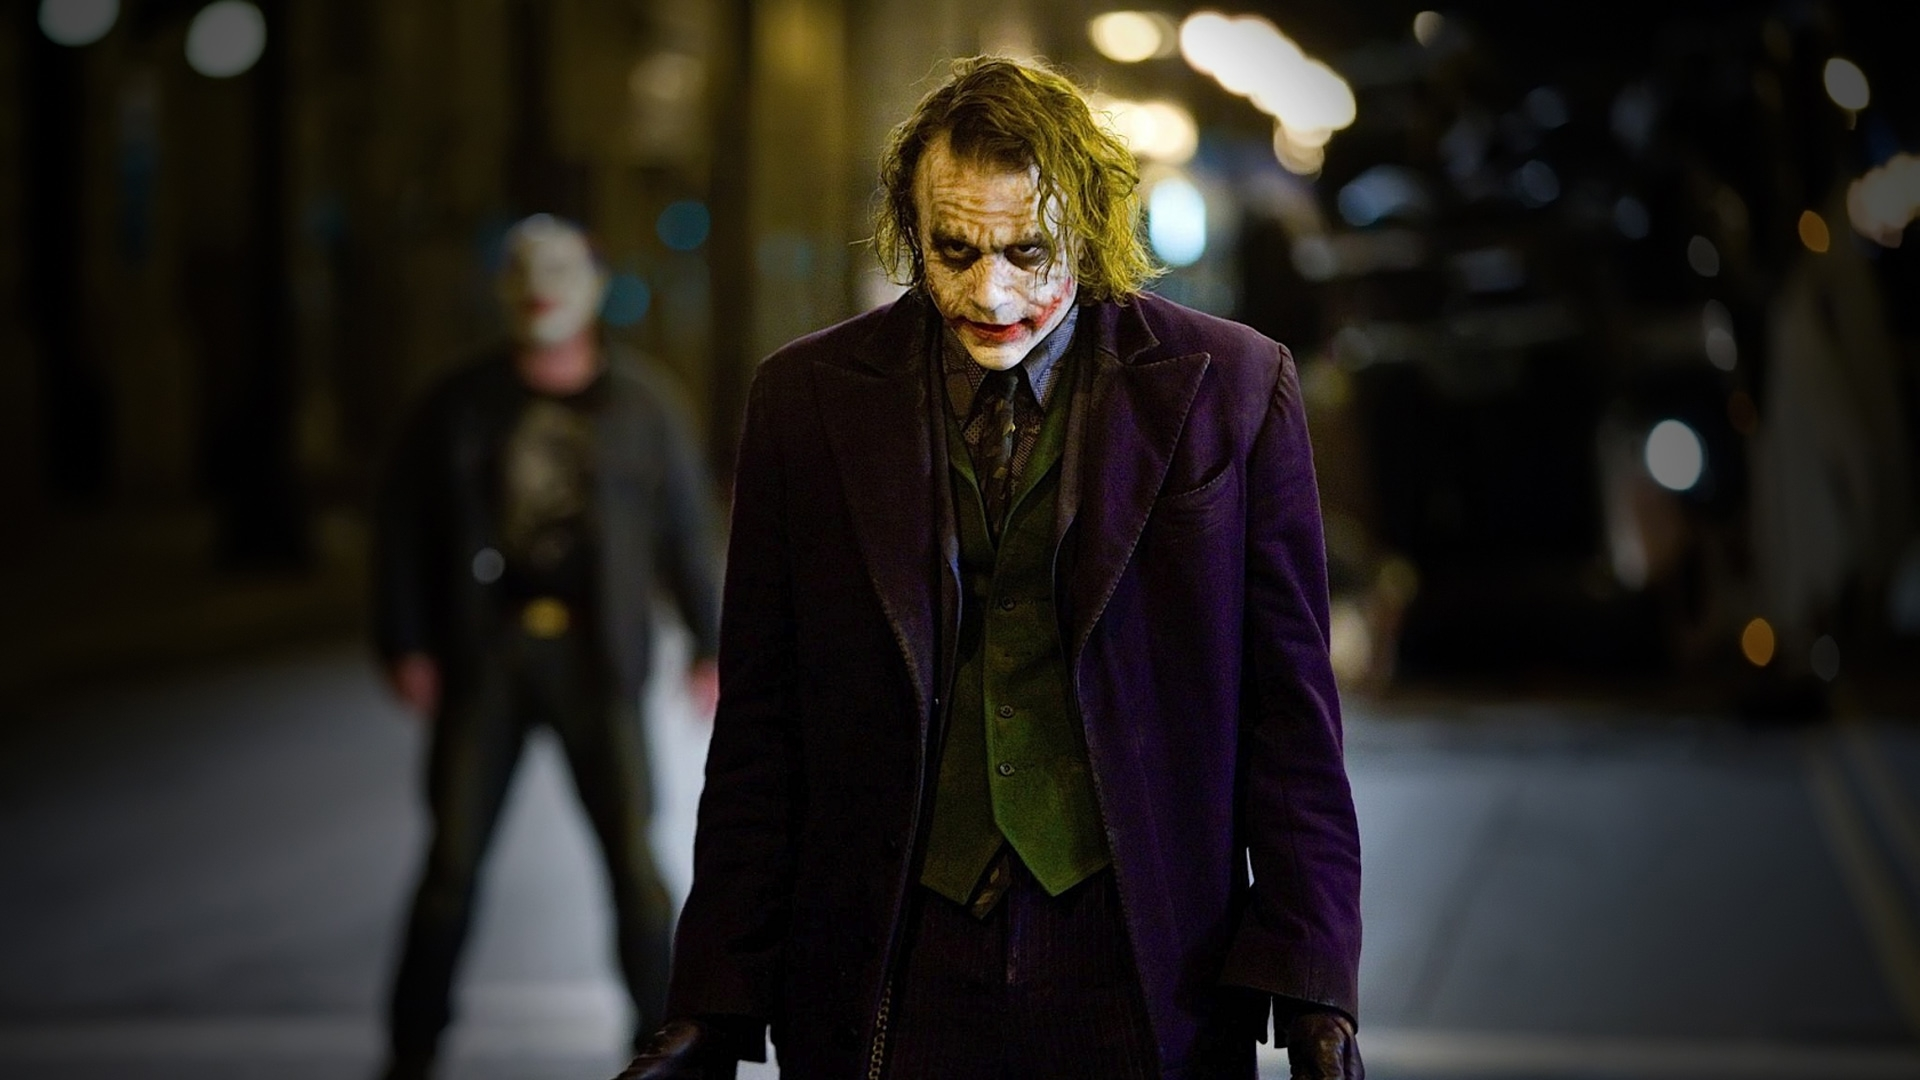 The Joker Wallpaper HD Celebrity and Movie Pictures Photos 1920x1080